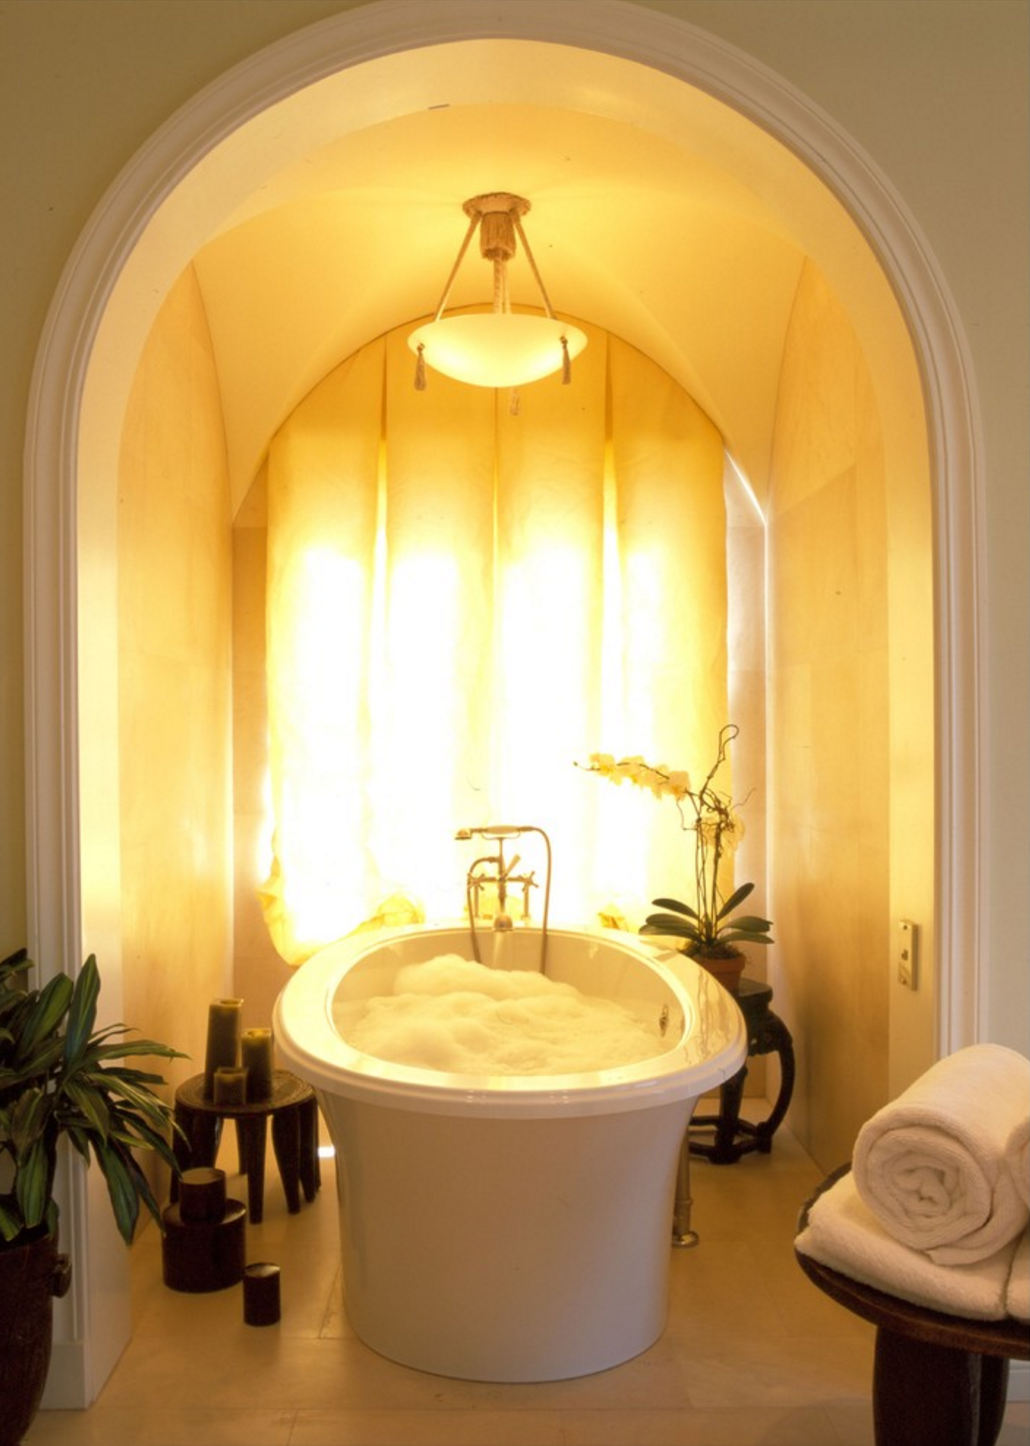 This bath nook is so luminous and relaxing with our therapeutic ...